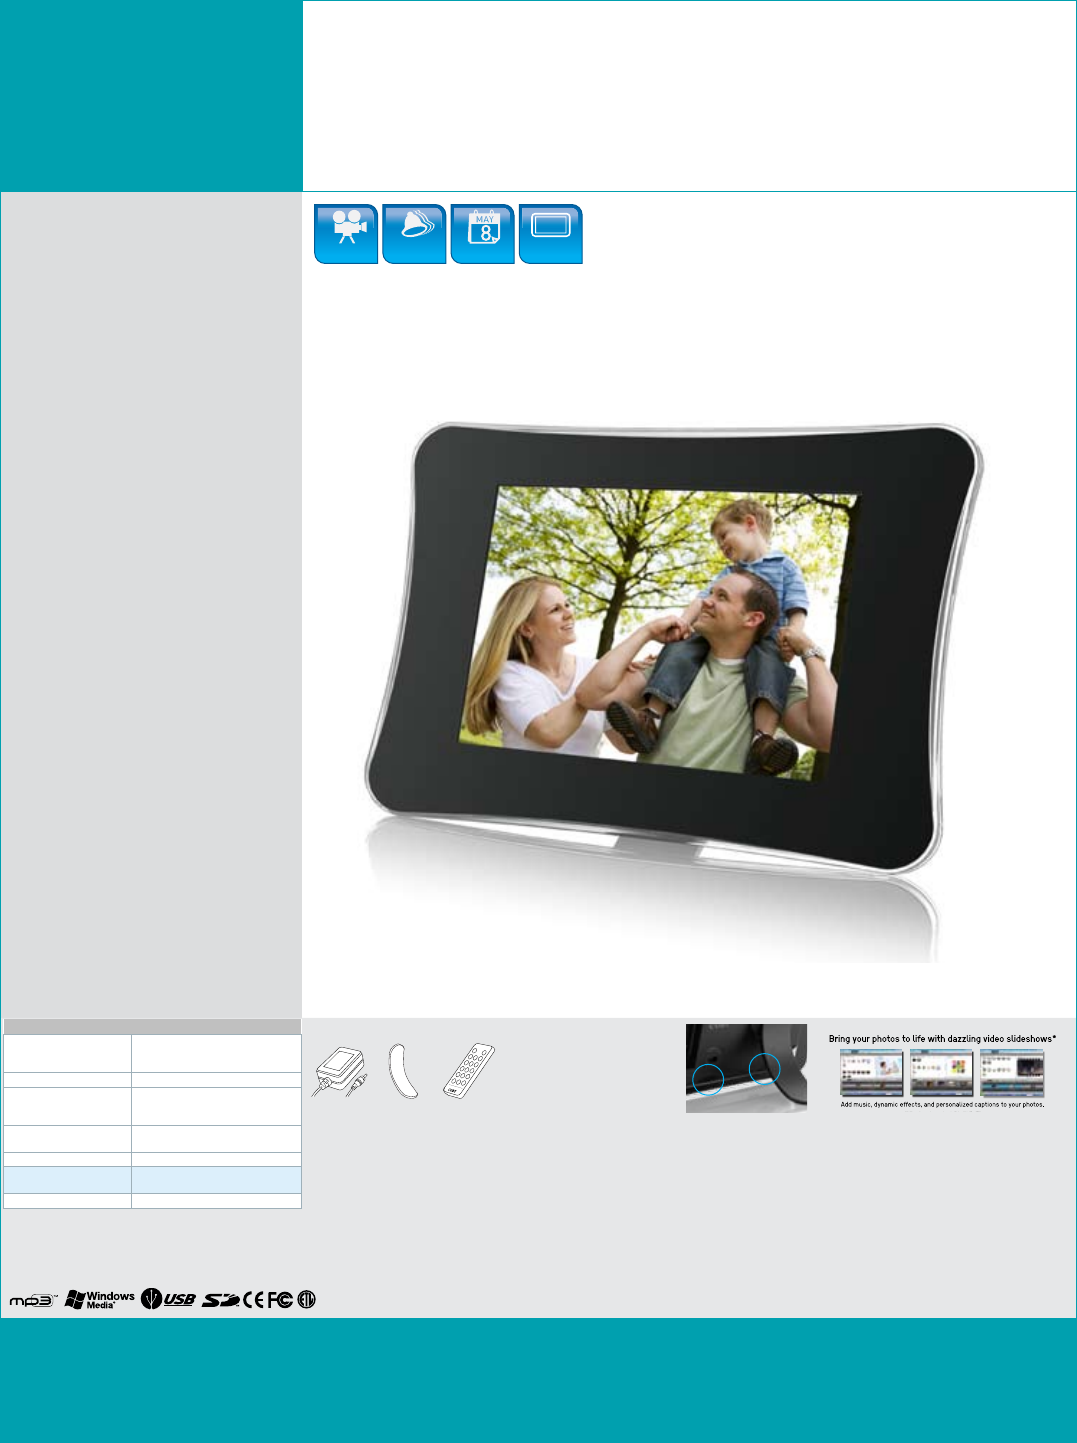 COBY electronic DP710 Digital Photo Frame User Manual